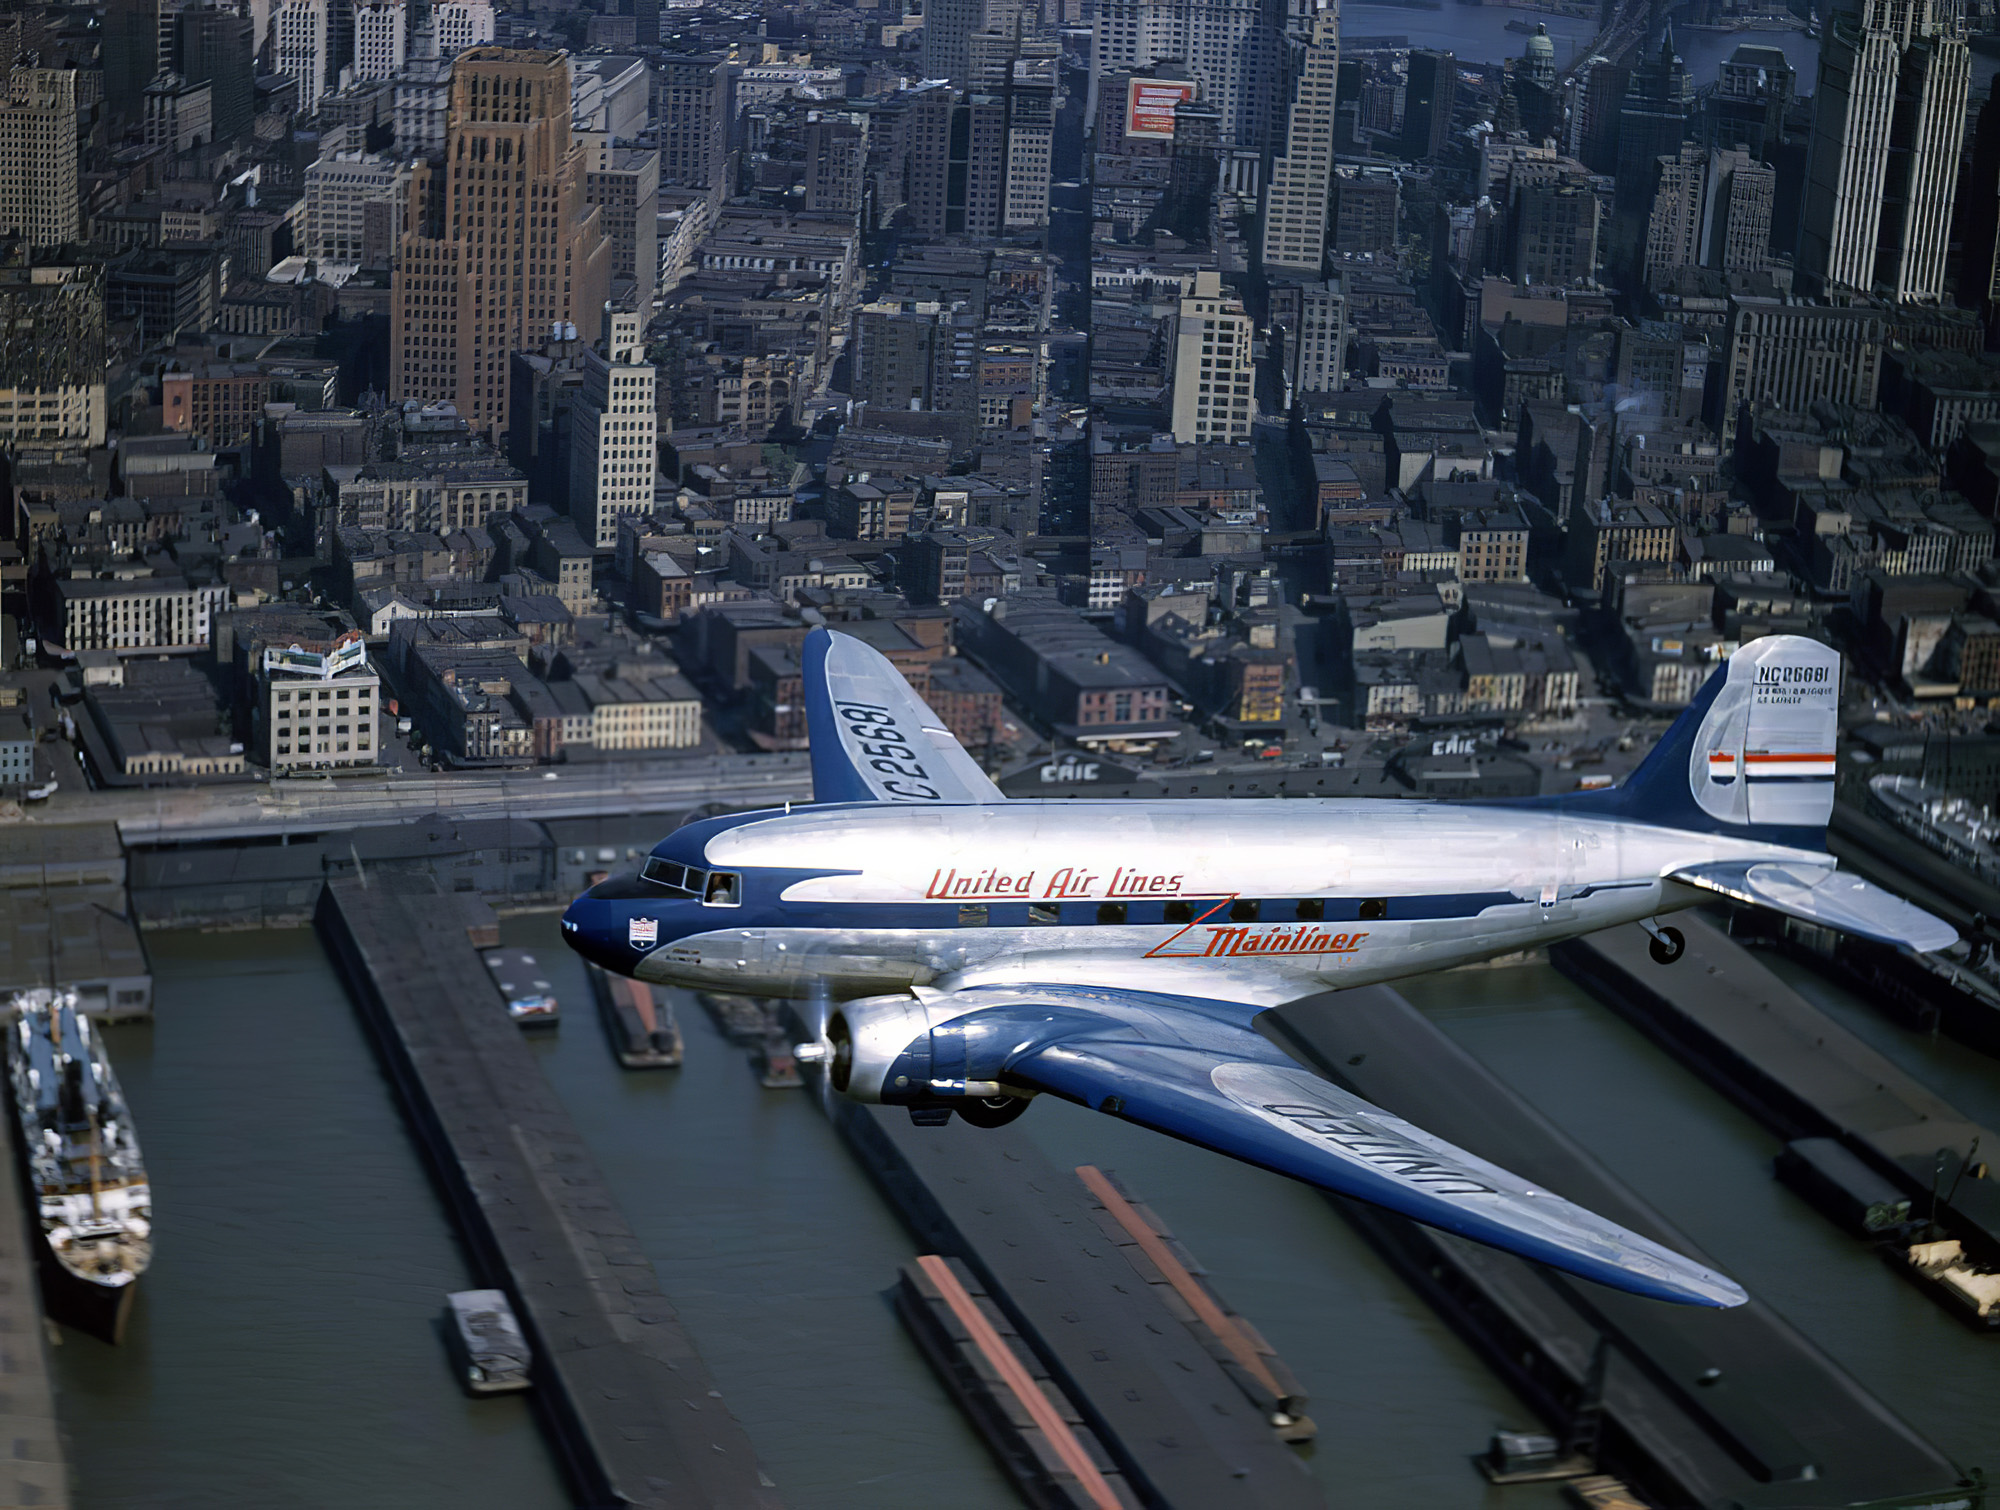 1940 A United Airlines Mainliner flies through the air by Luis Marden3